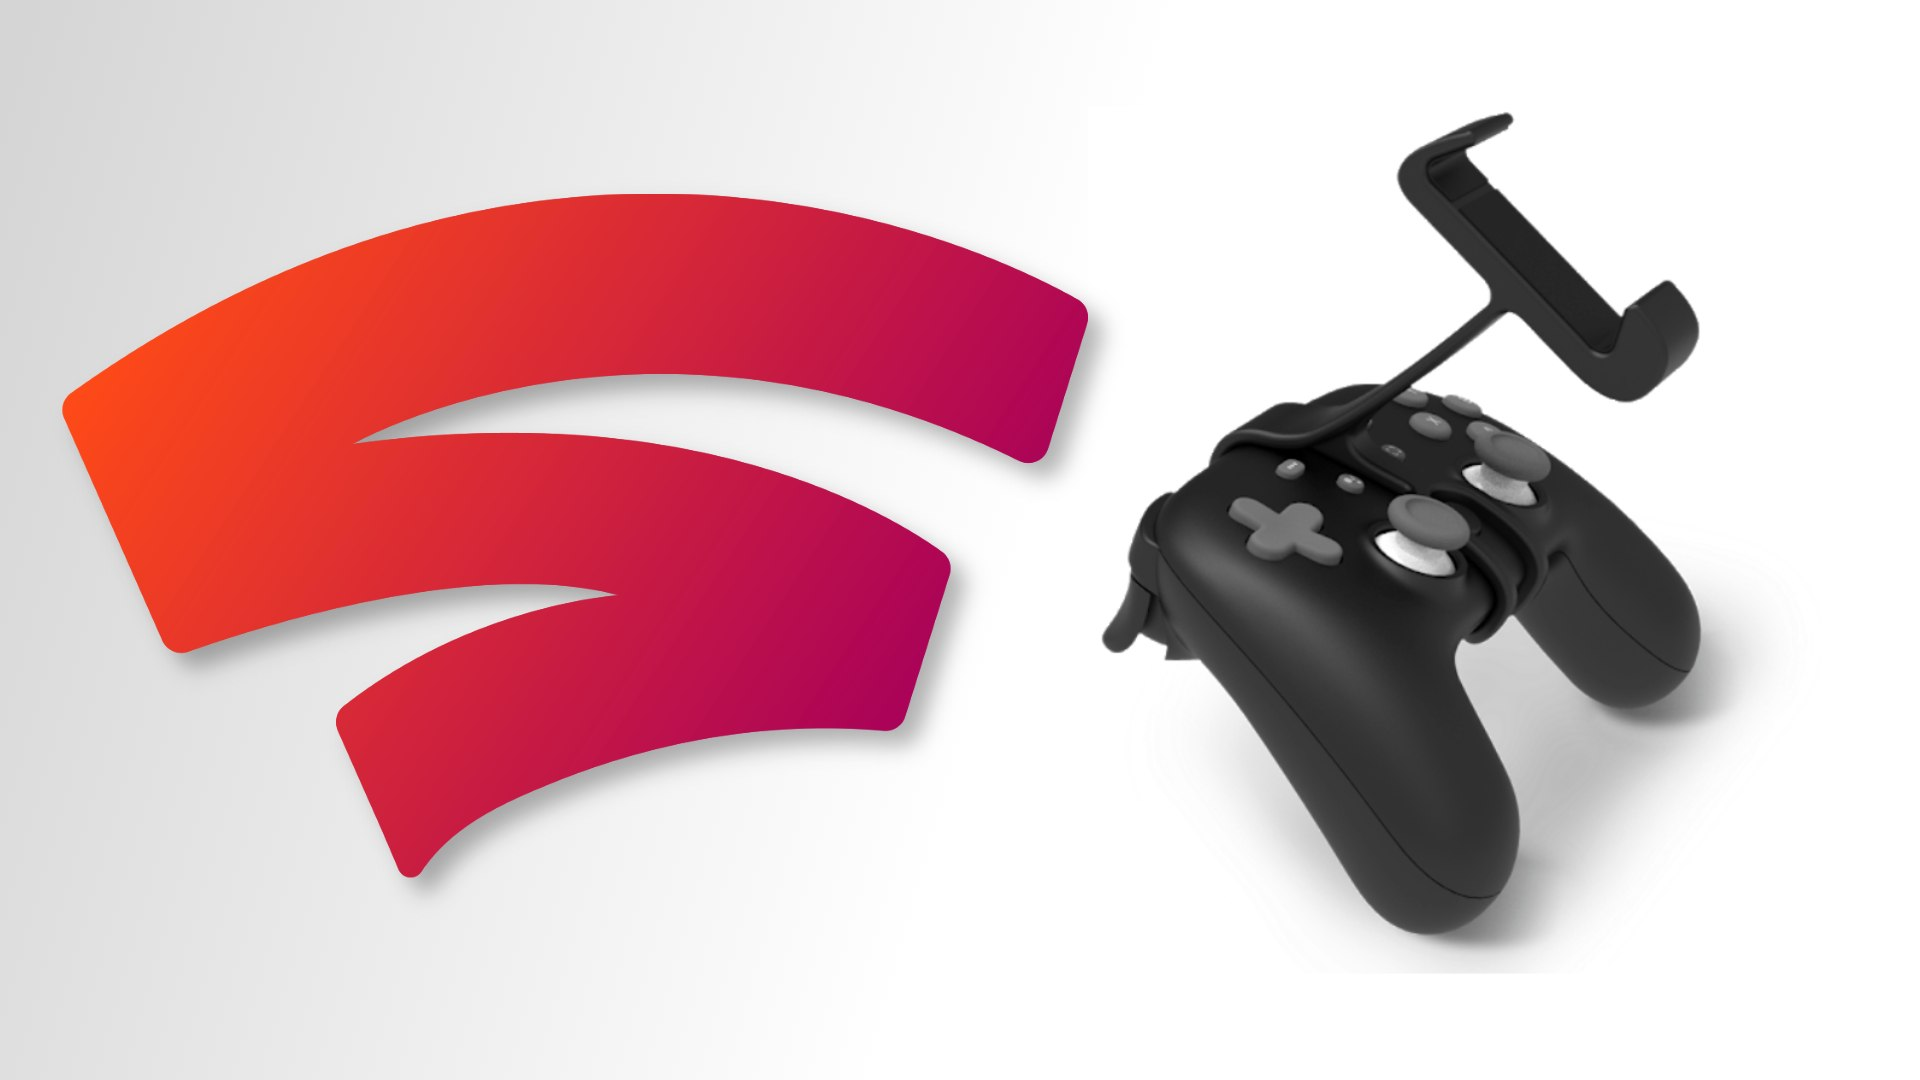 The CLAW – a clip to make playing Stadia better on your phone – sold out in 24 hours